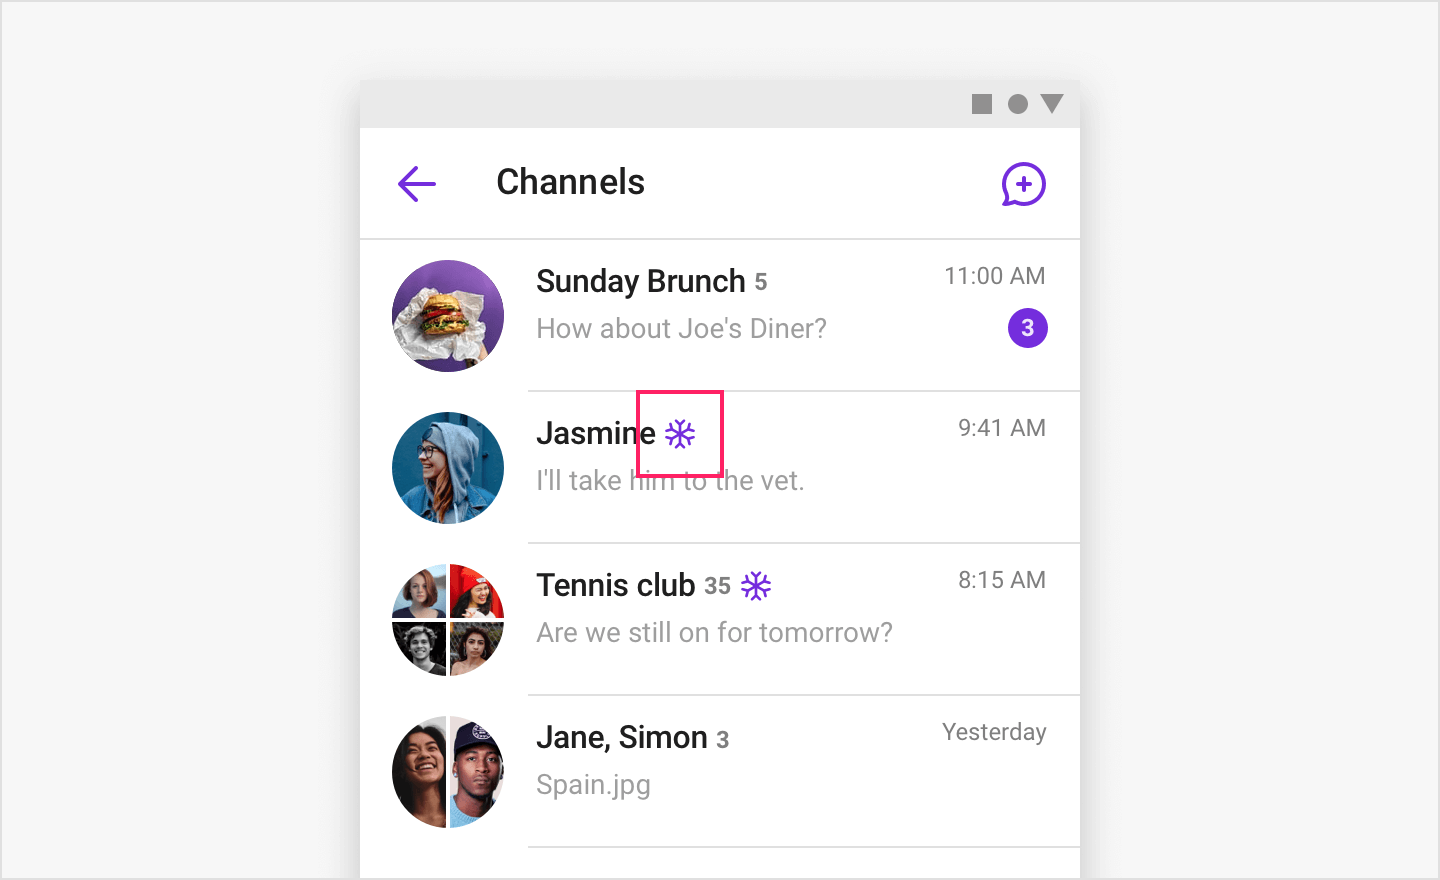 Image Channel list view showing the frozen channel icon.